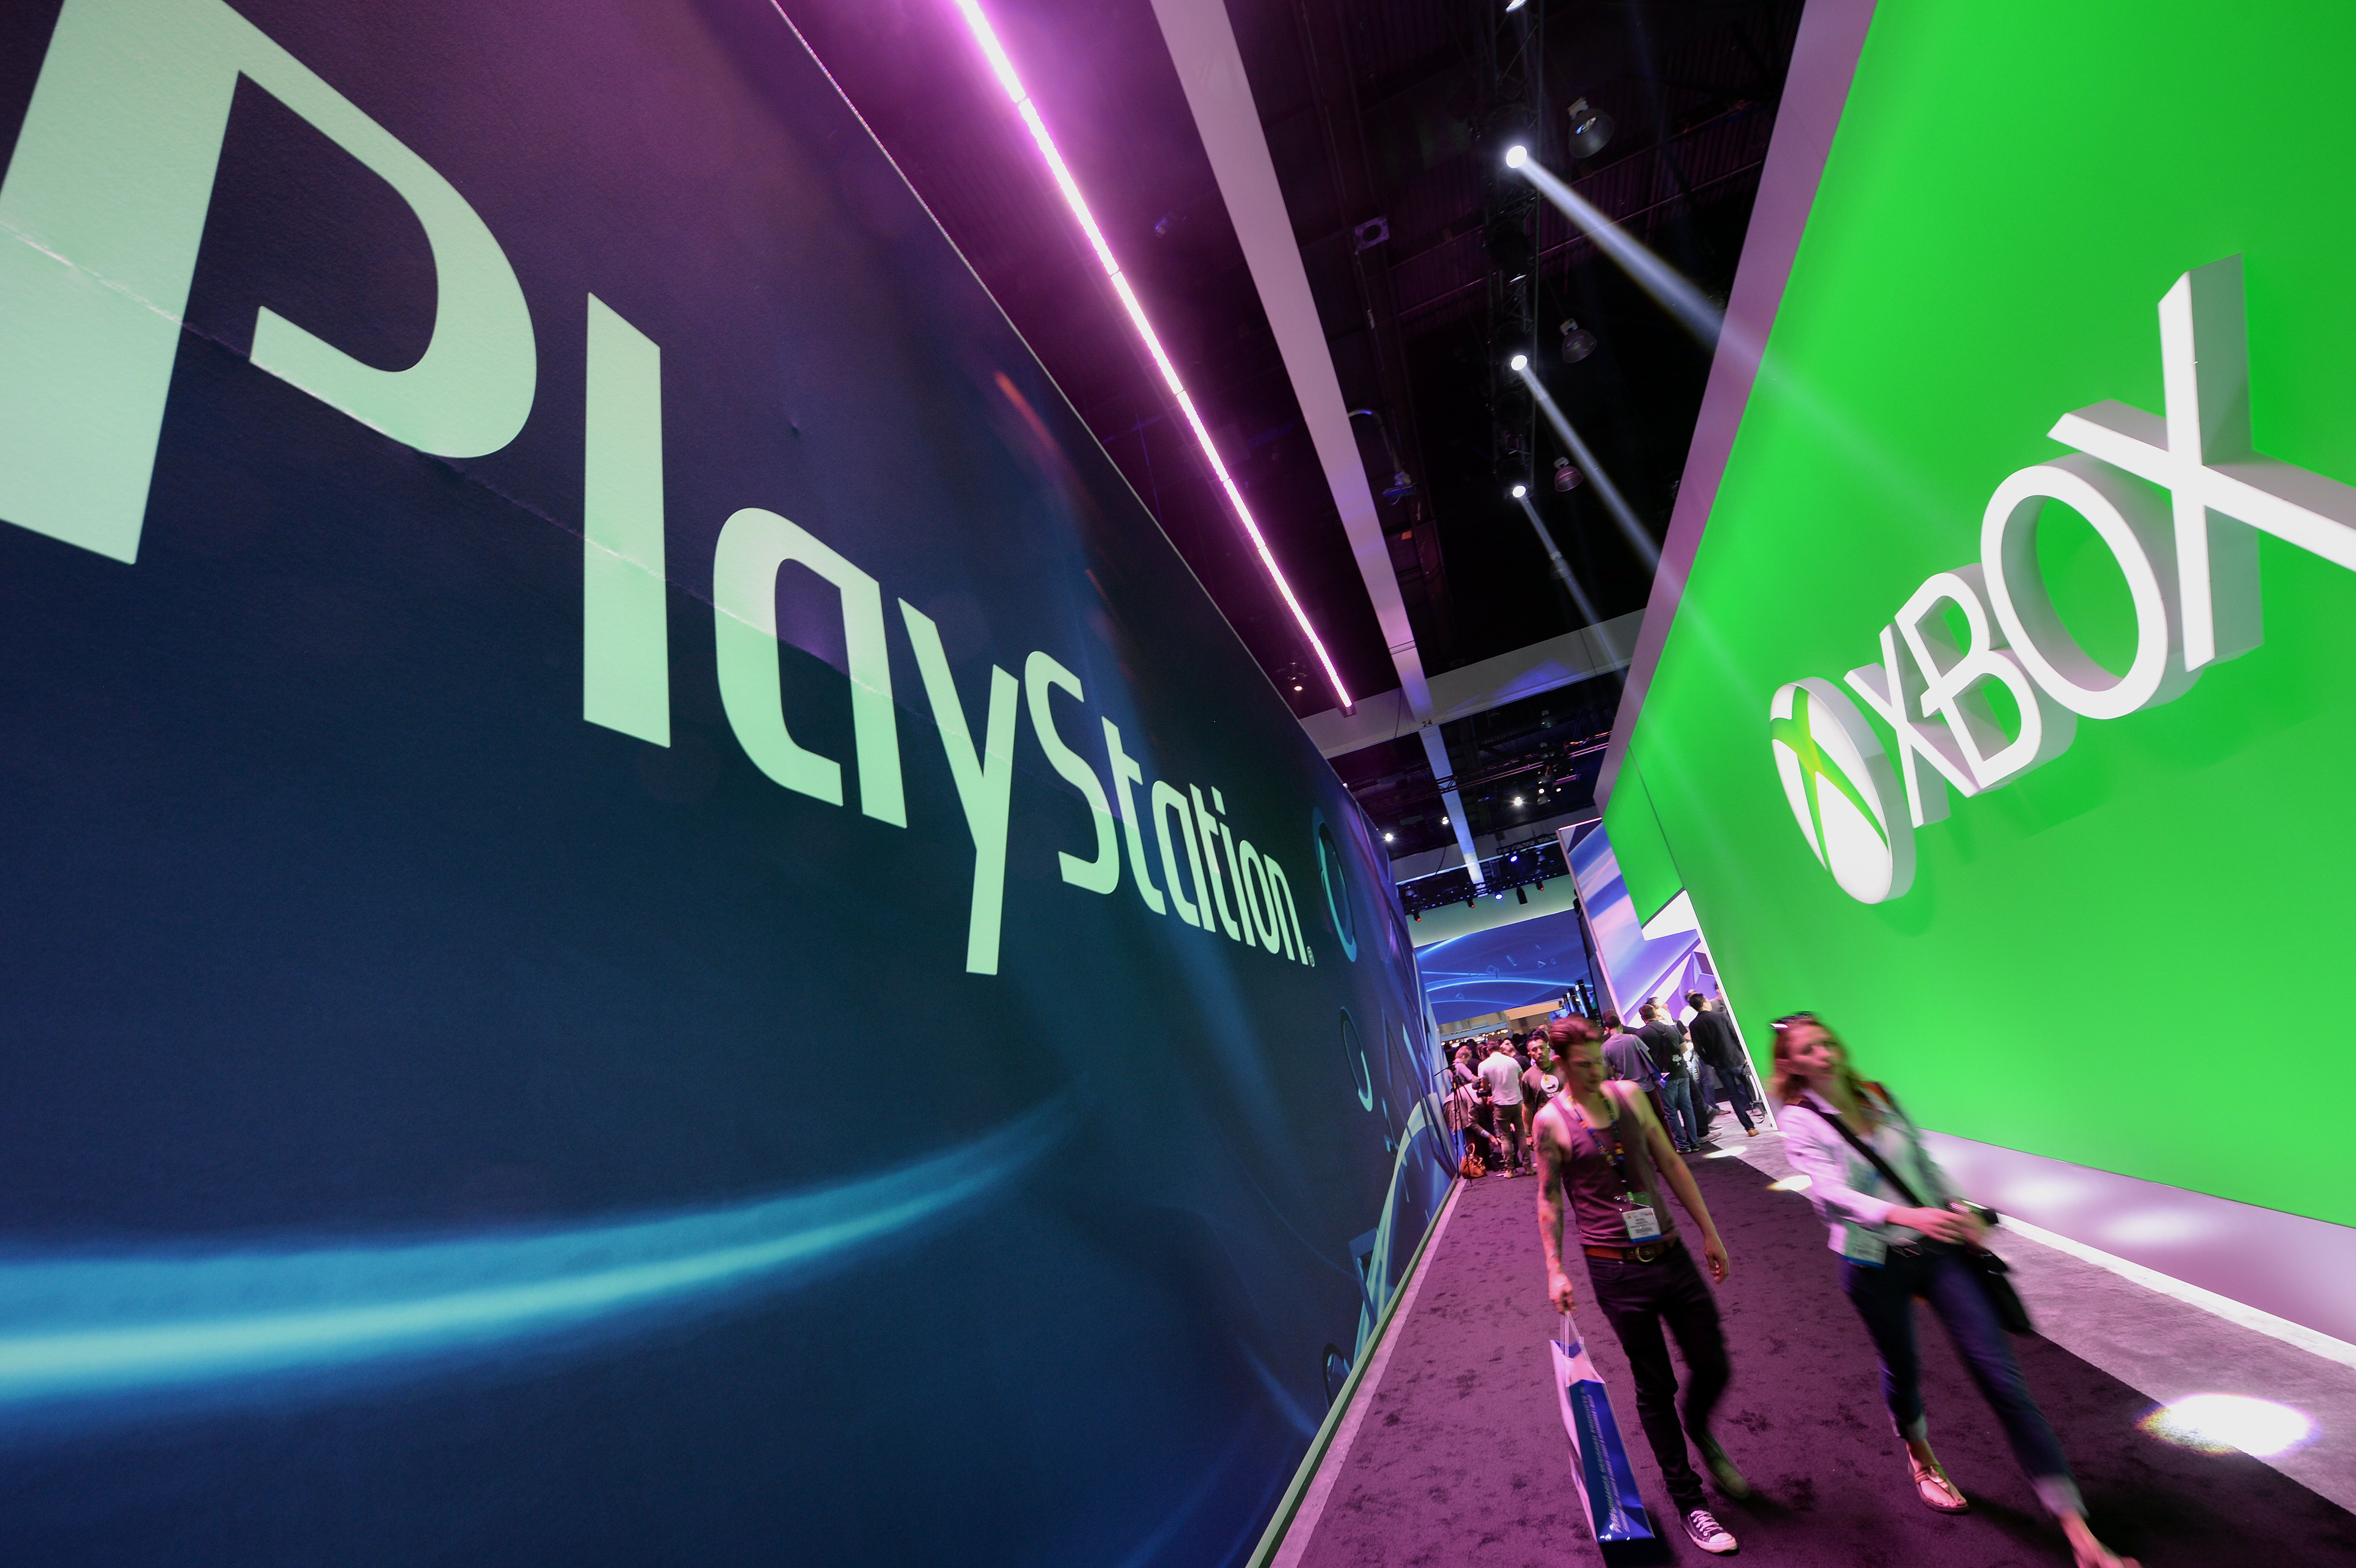 E3 video game trade event adds sideshow for players